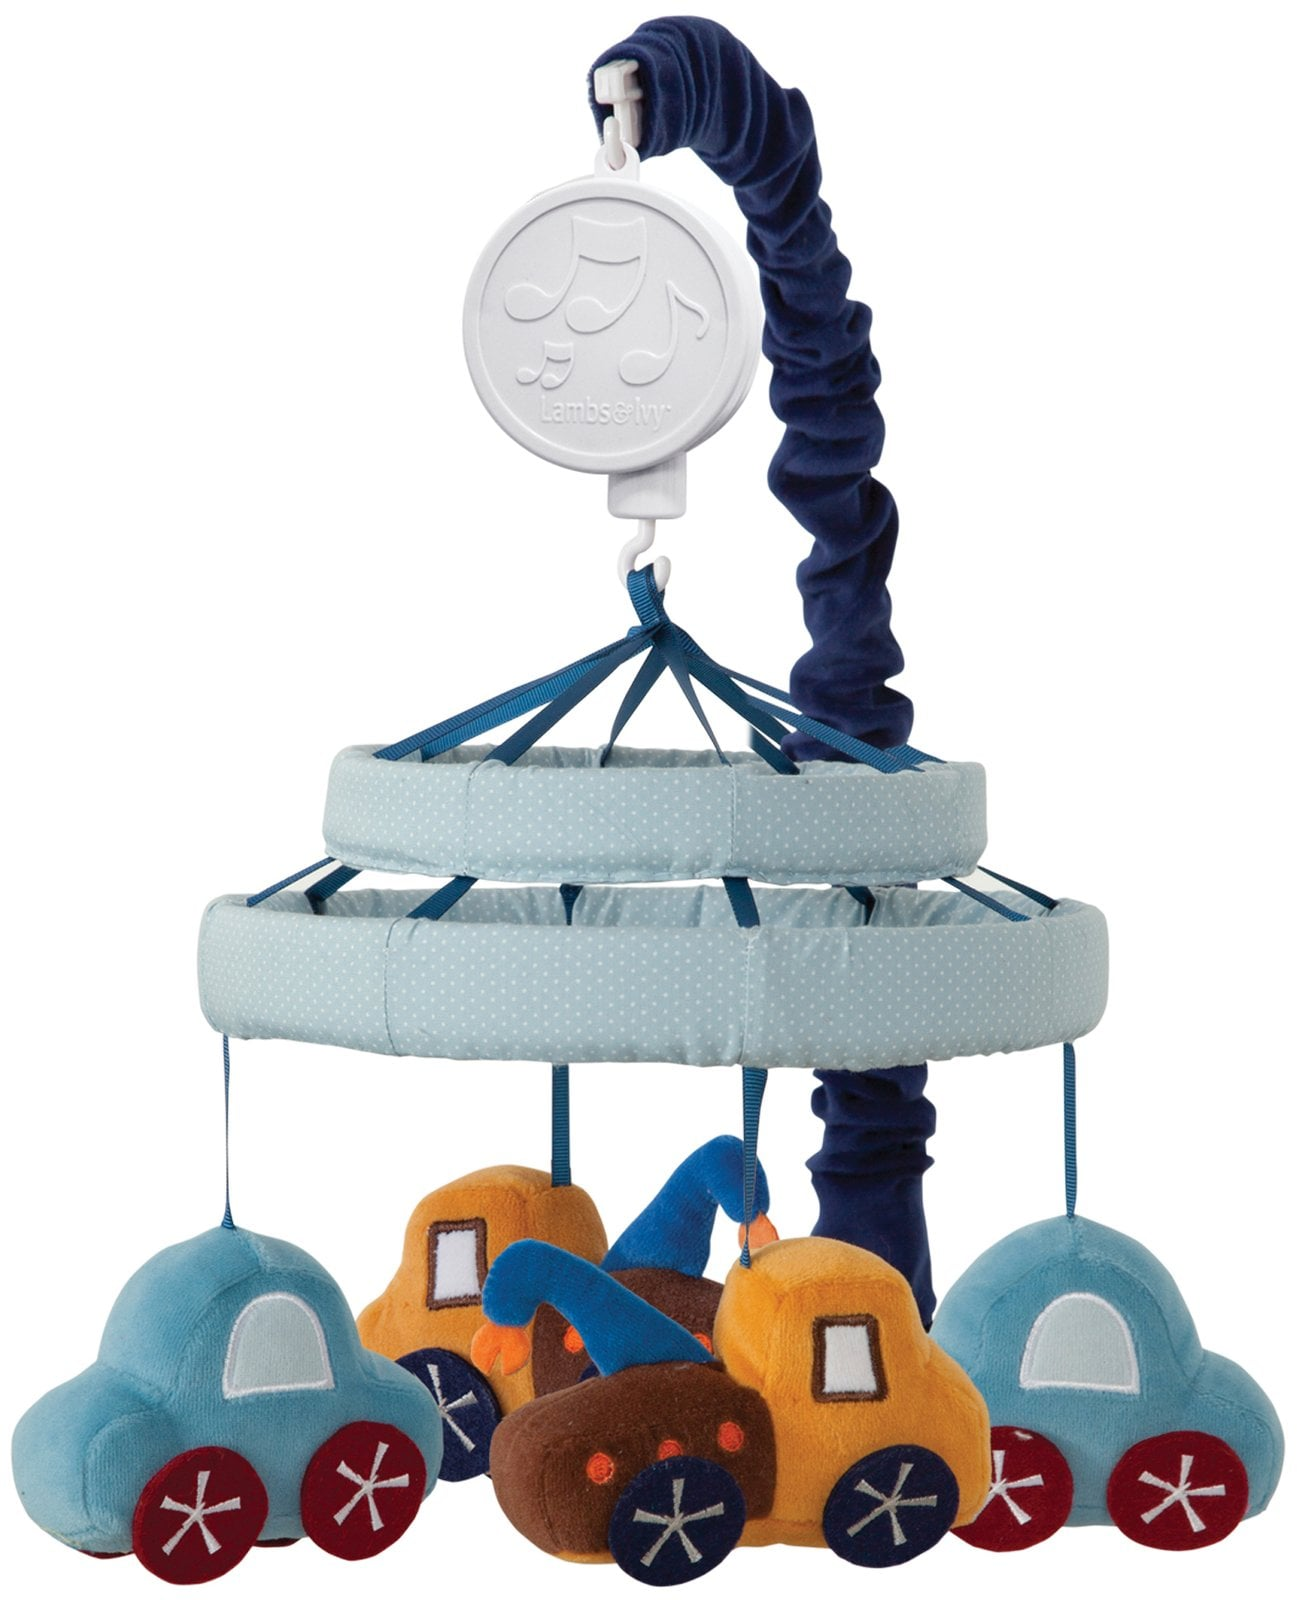 Lambs & Ivy Little Travelers Musical Mobile ($50)